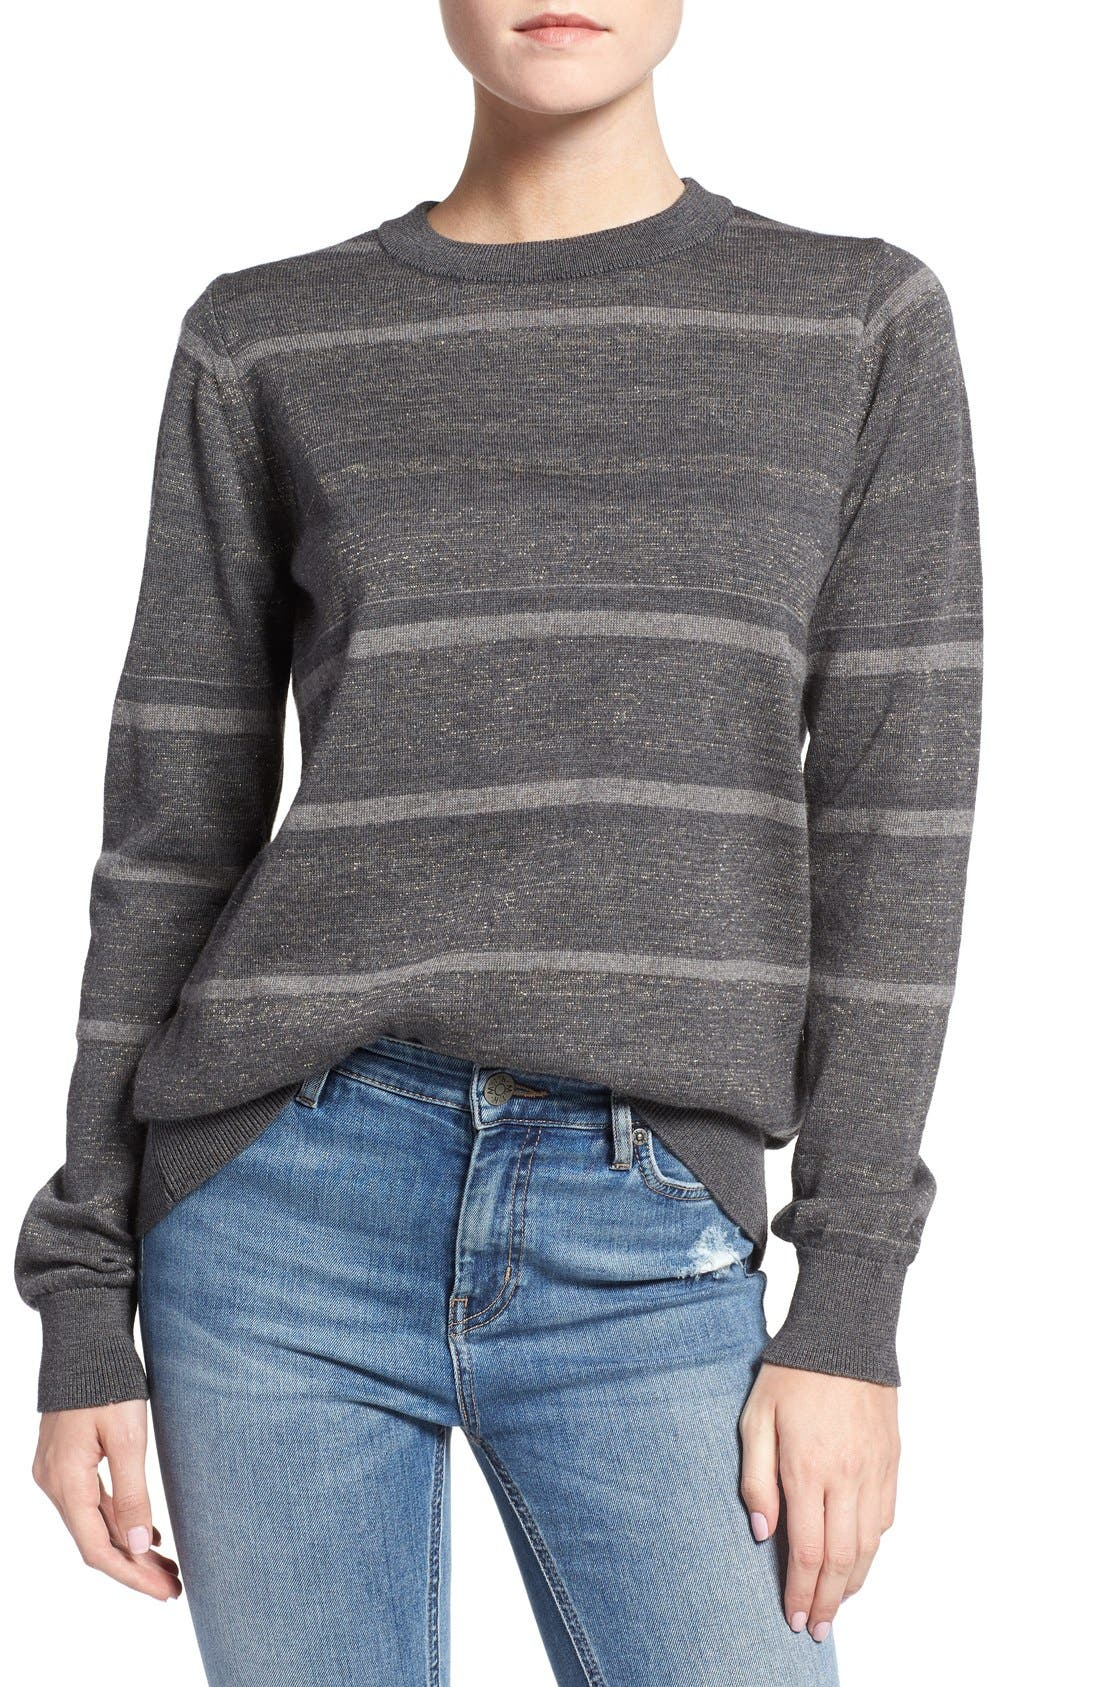 Main Image - M.i.h. Jeans 'Falls' Metallic Stripe Merino Wool Sweater